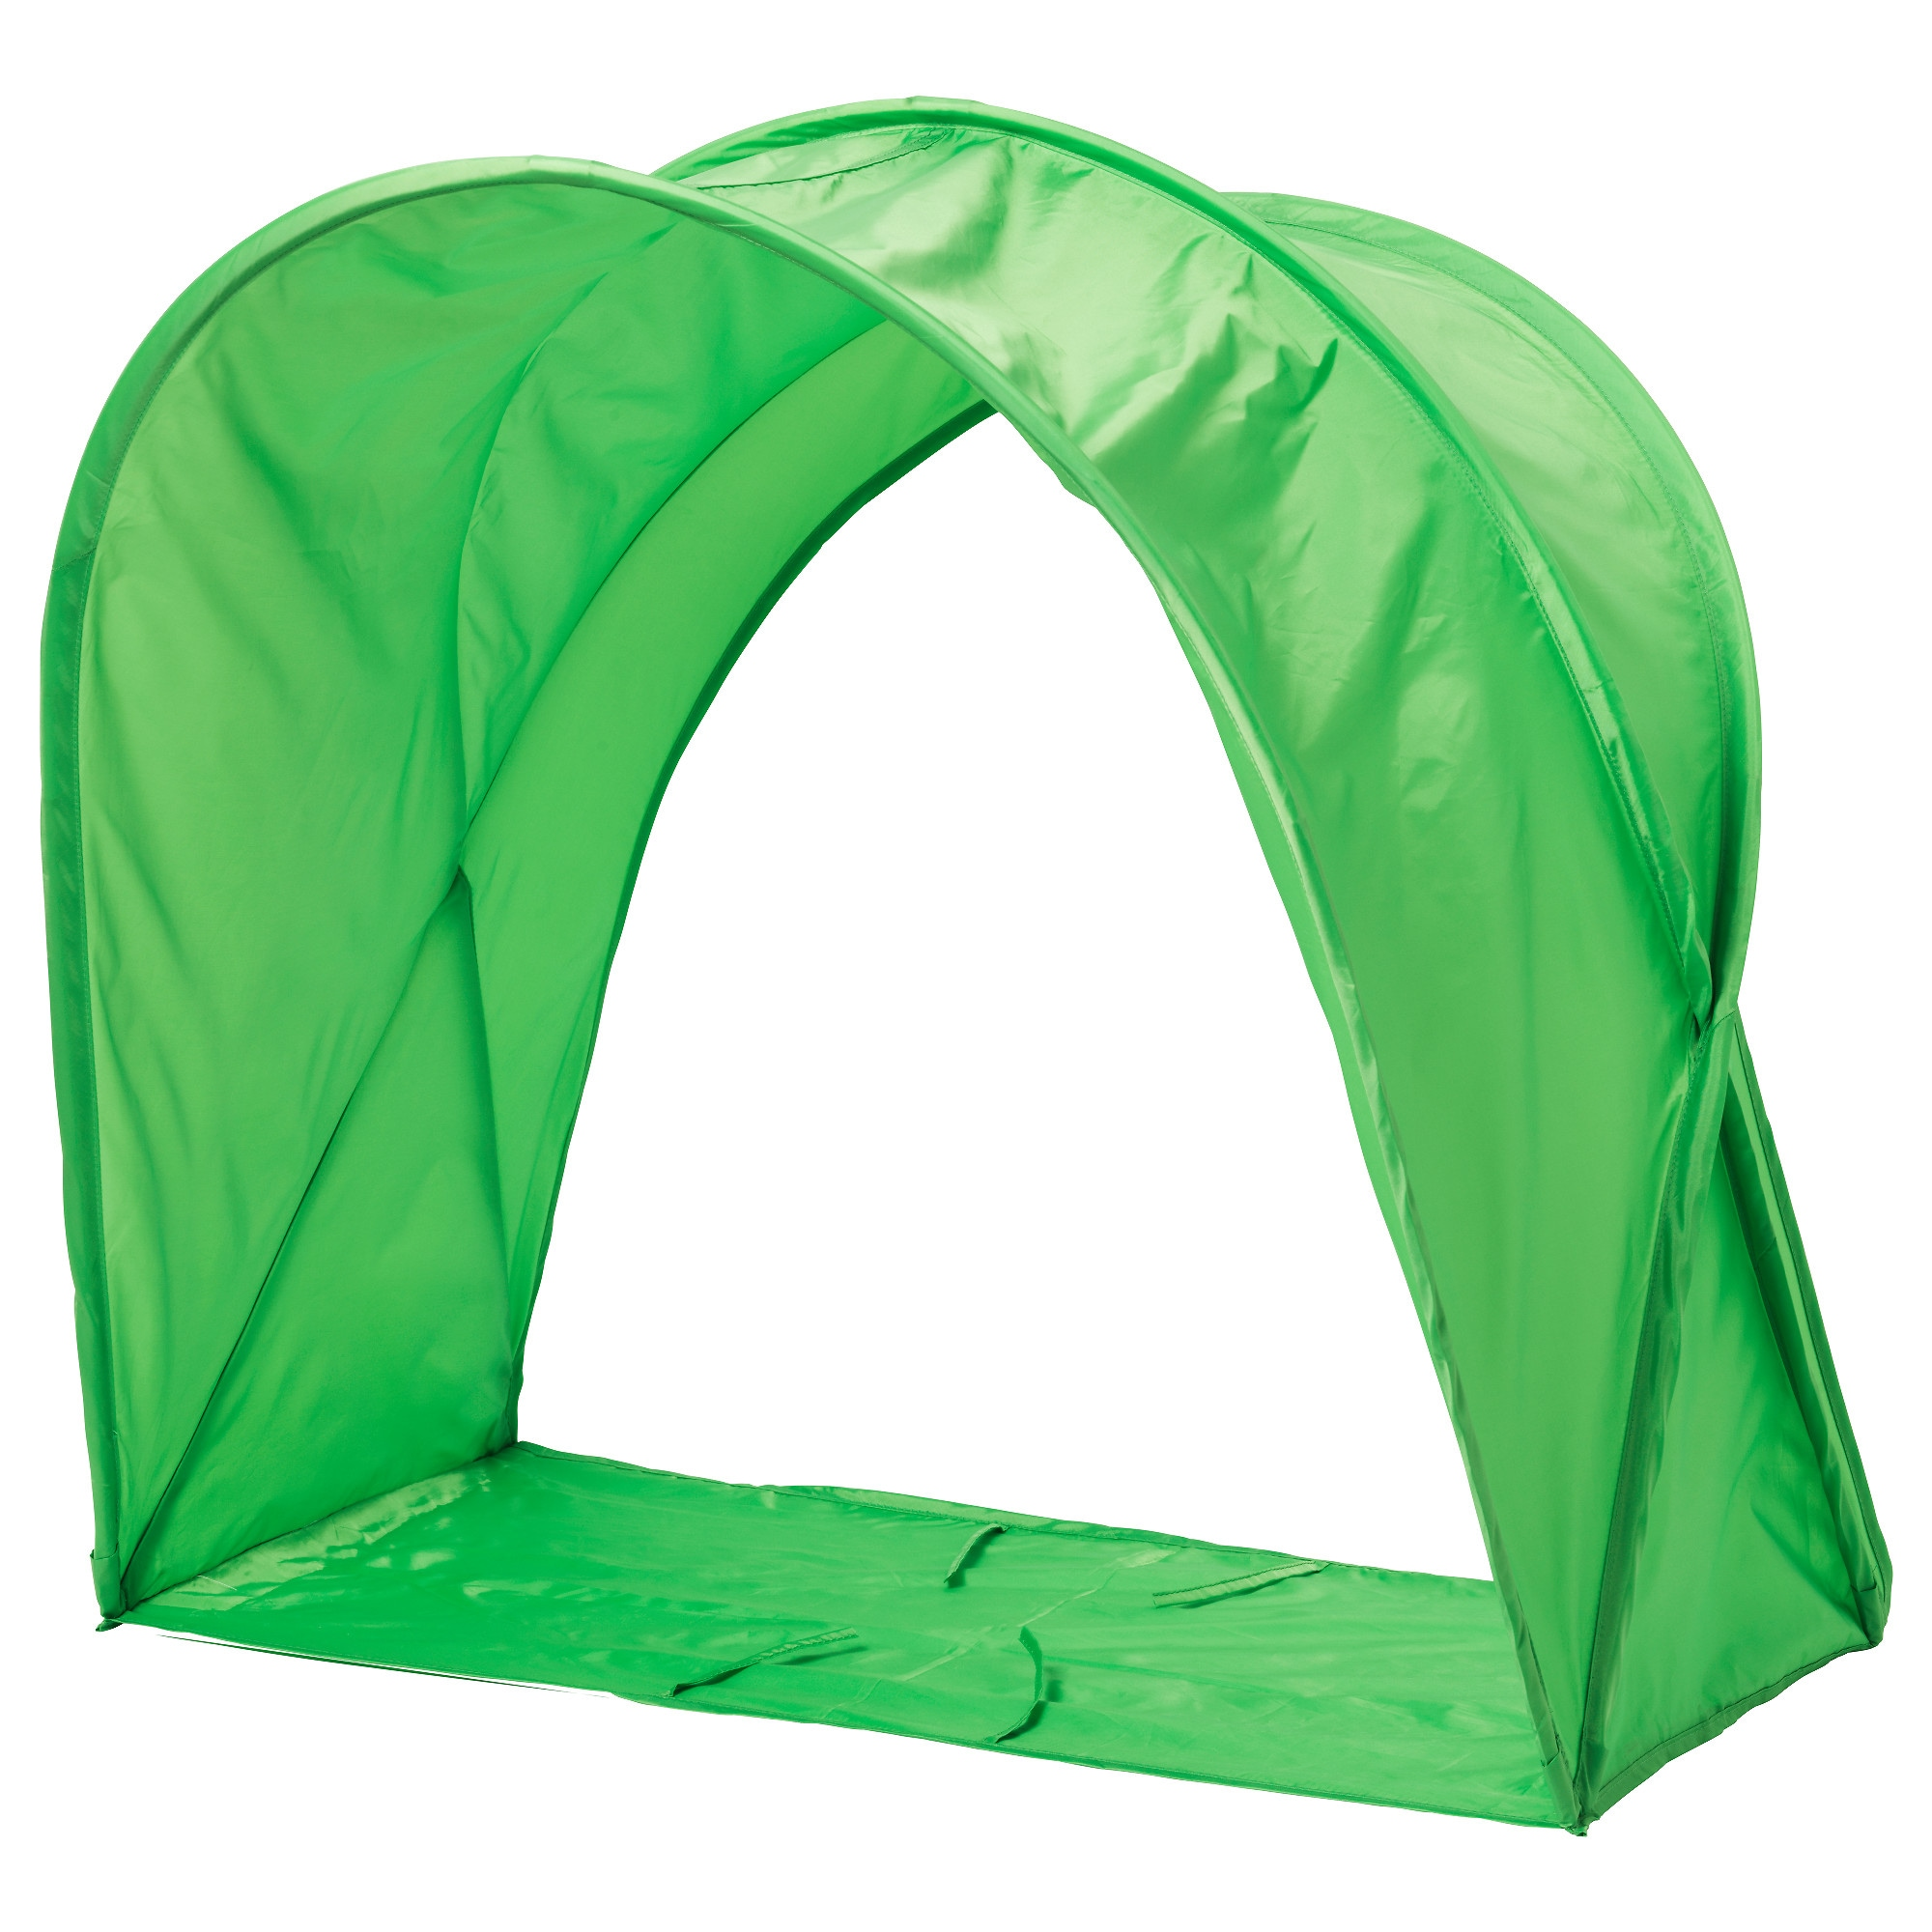 Kids bed tent canopy - Sufflett Bed Tent Green Height 31